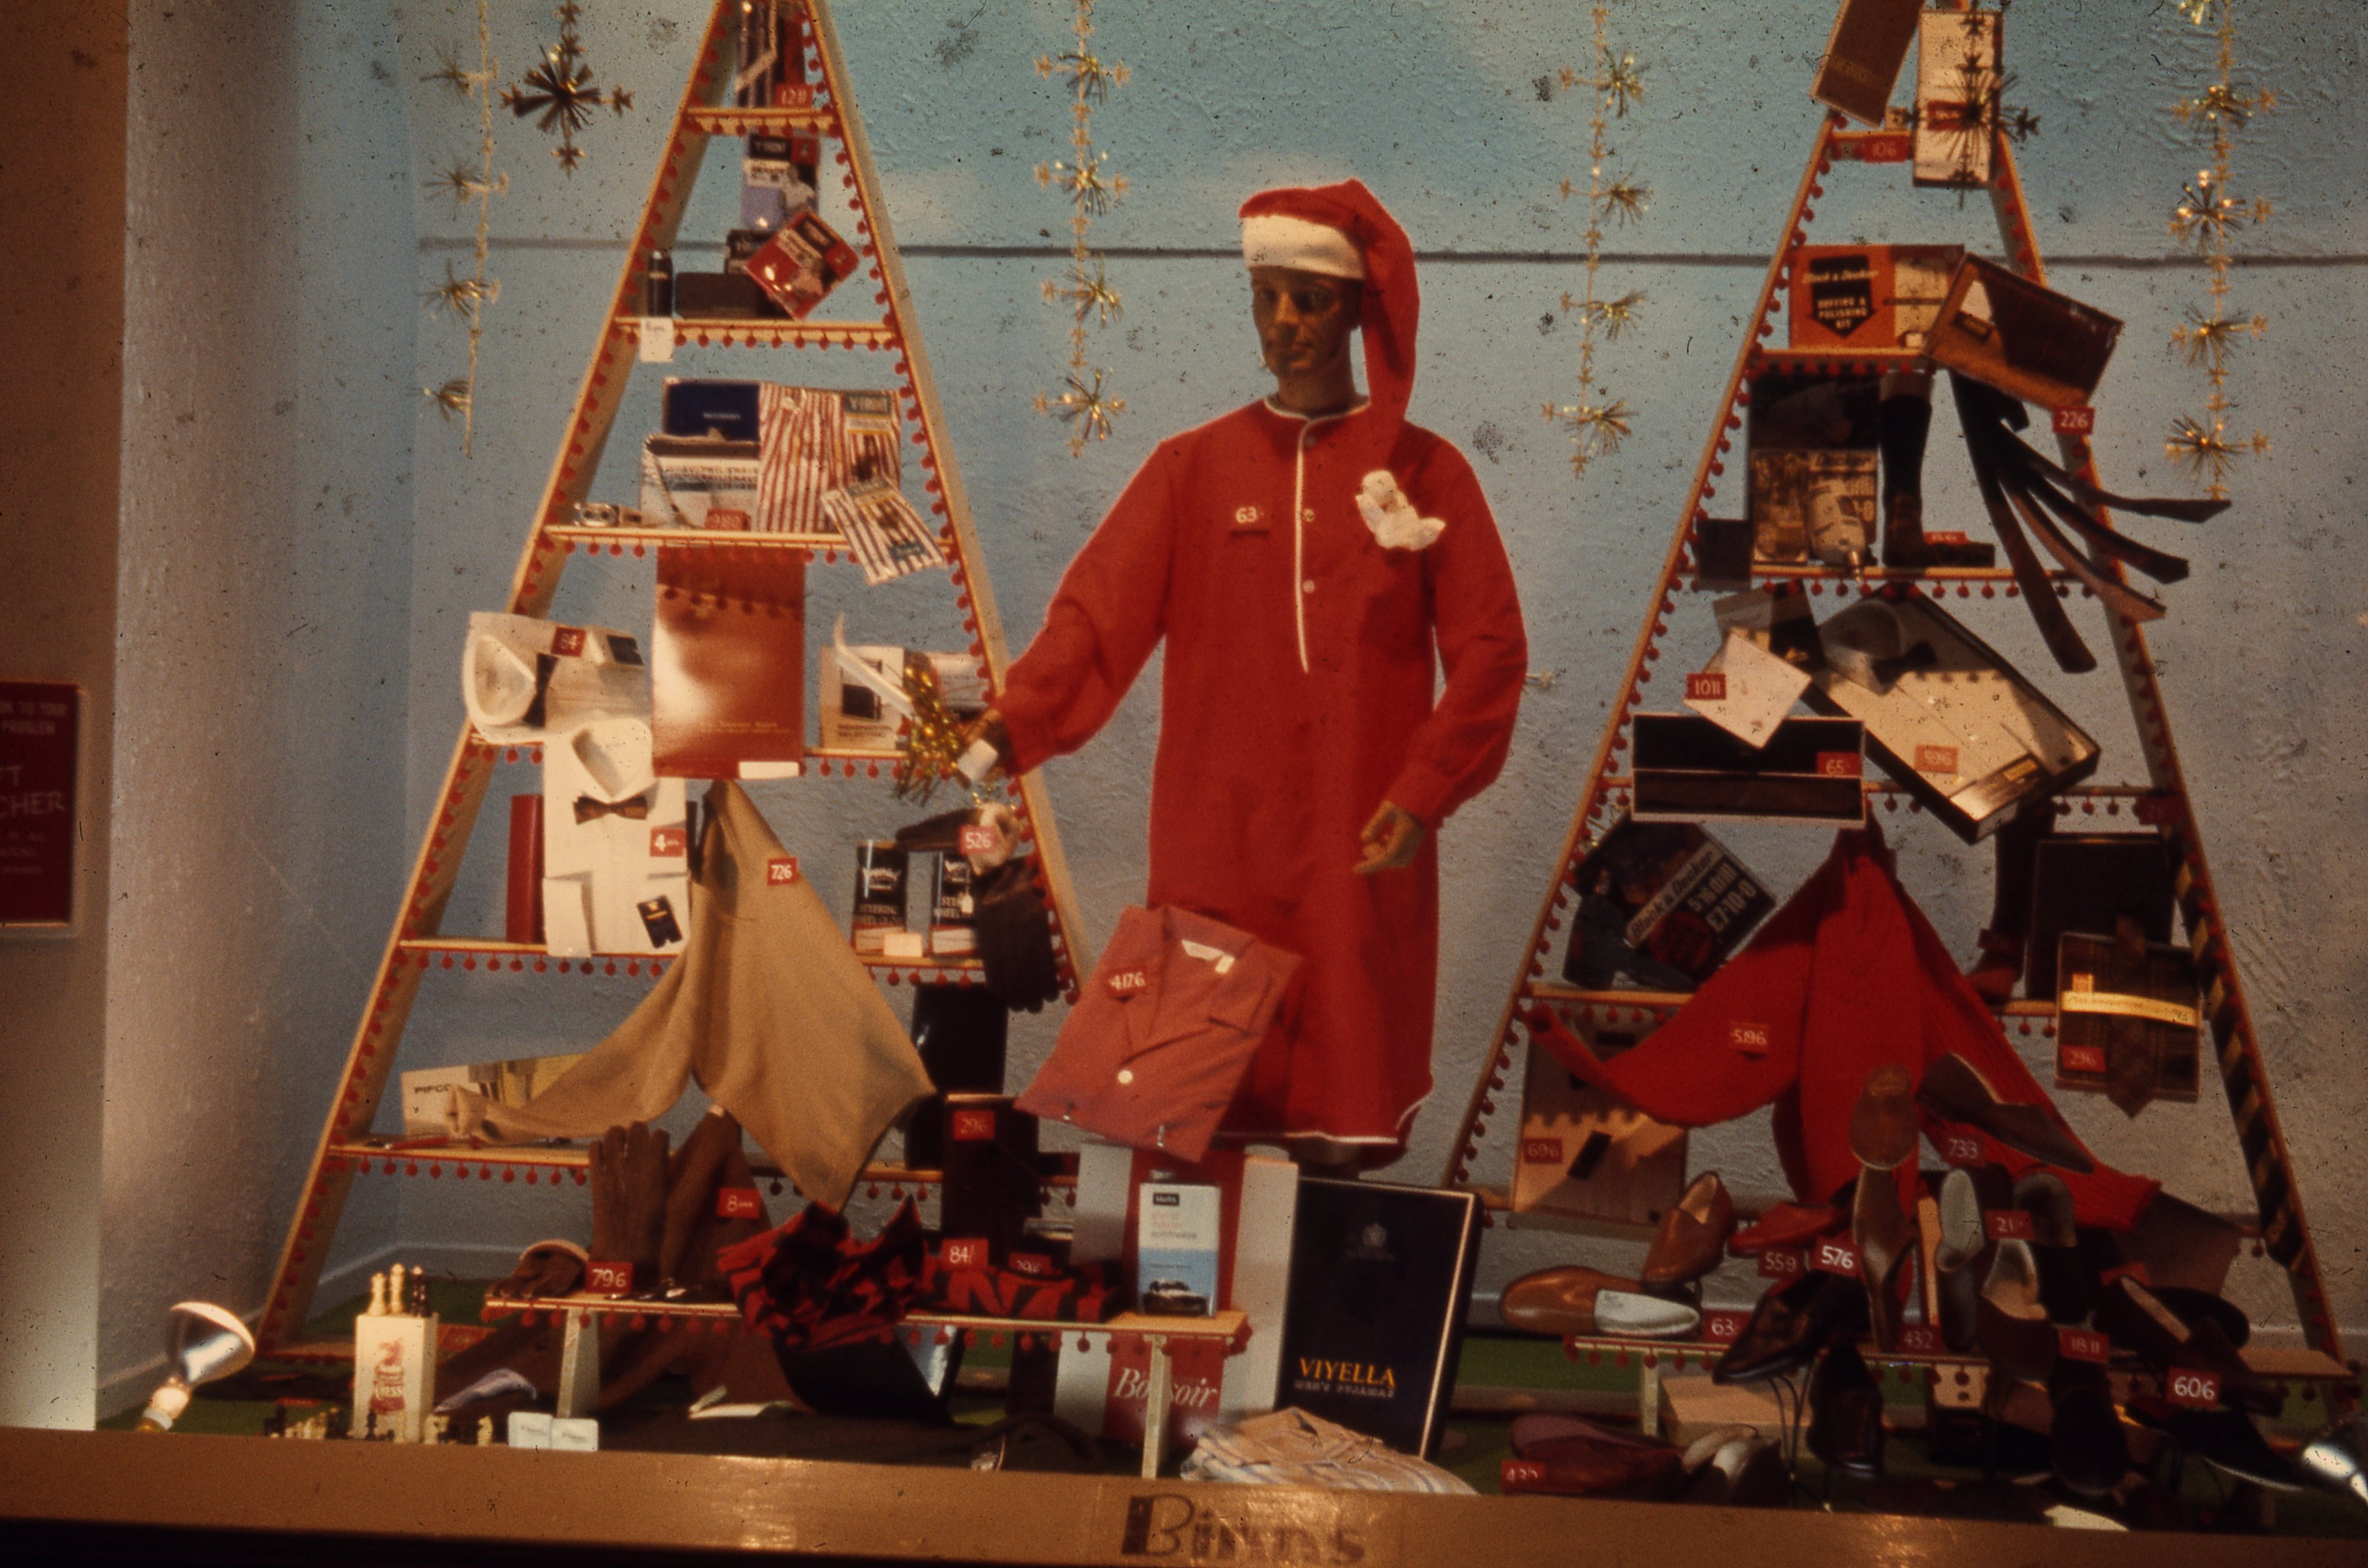 This is a men's gift display in Binns department store, Newcastle upon Tyne. This is a 35mm slide. It was taken in 1966.